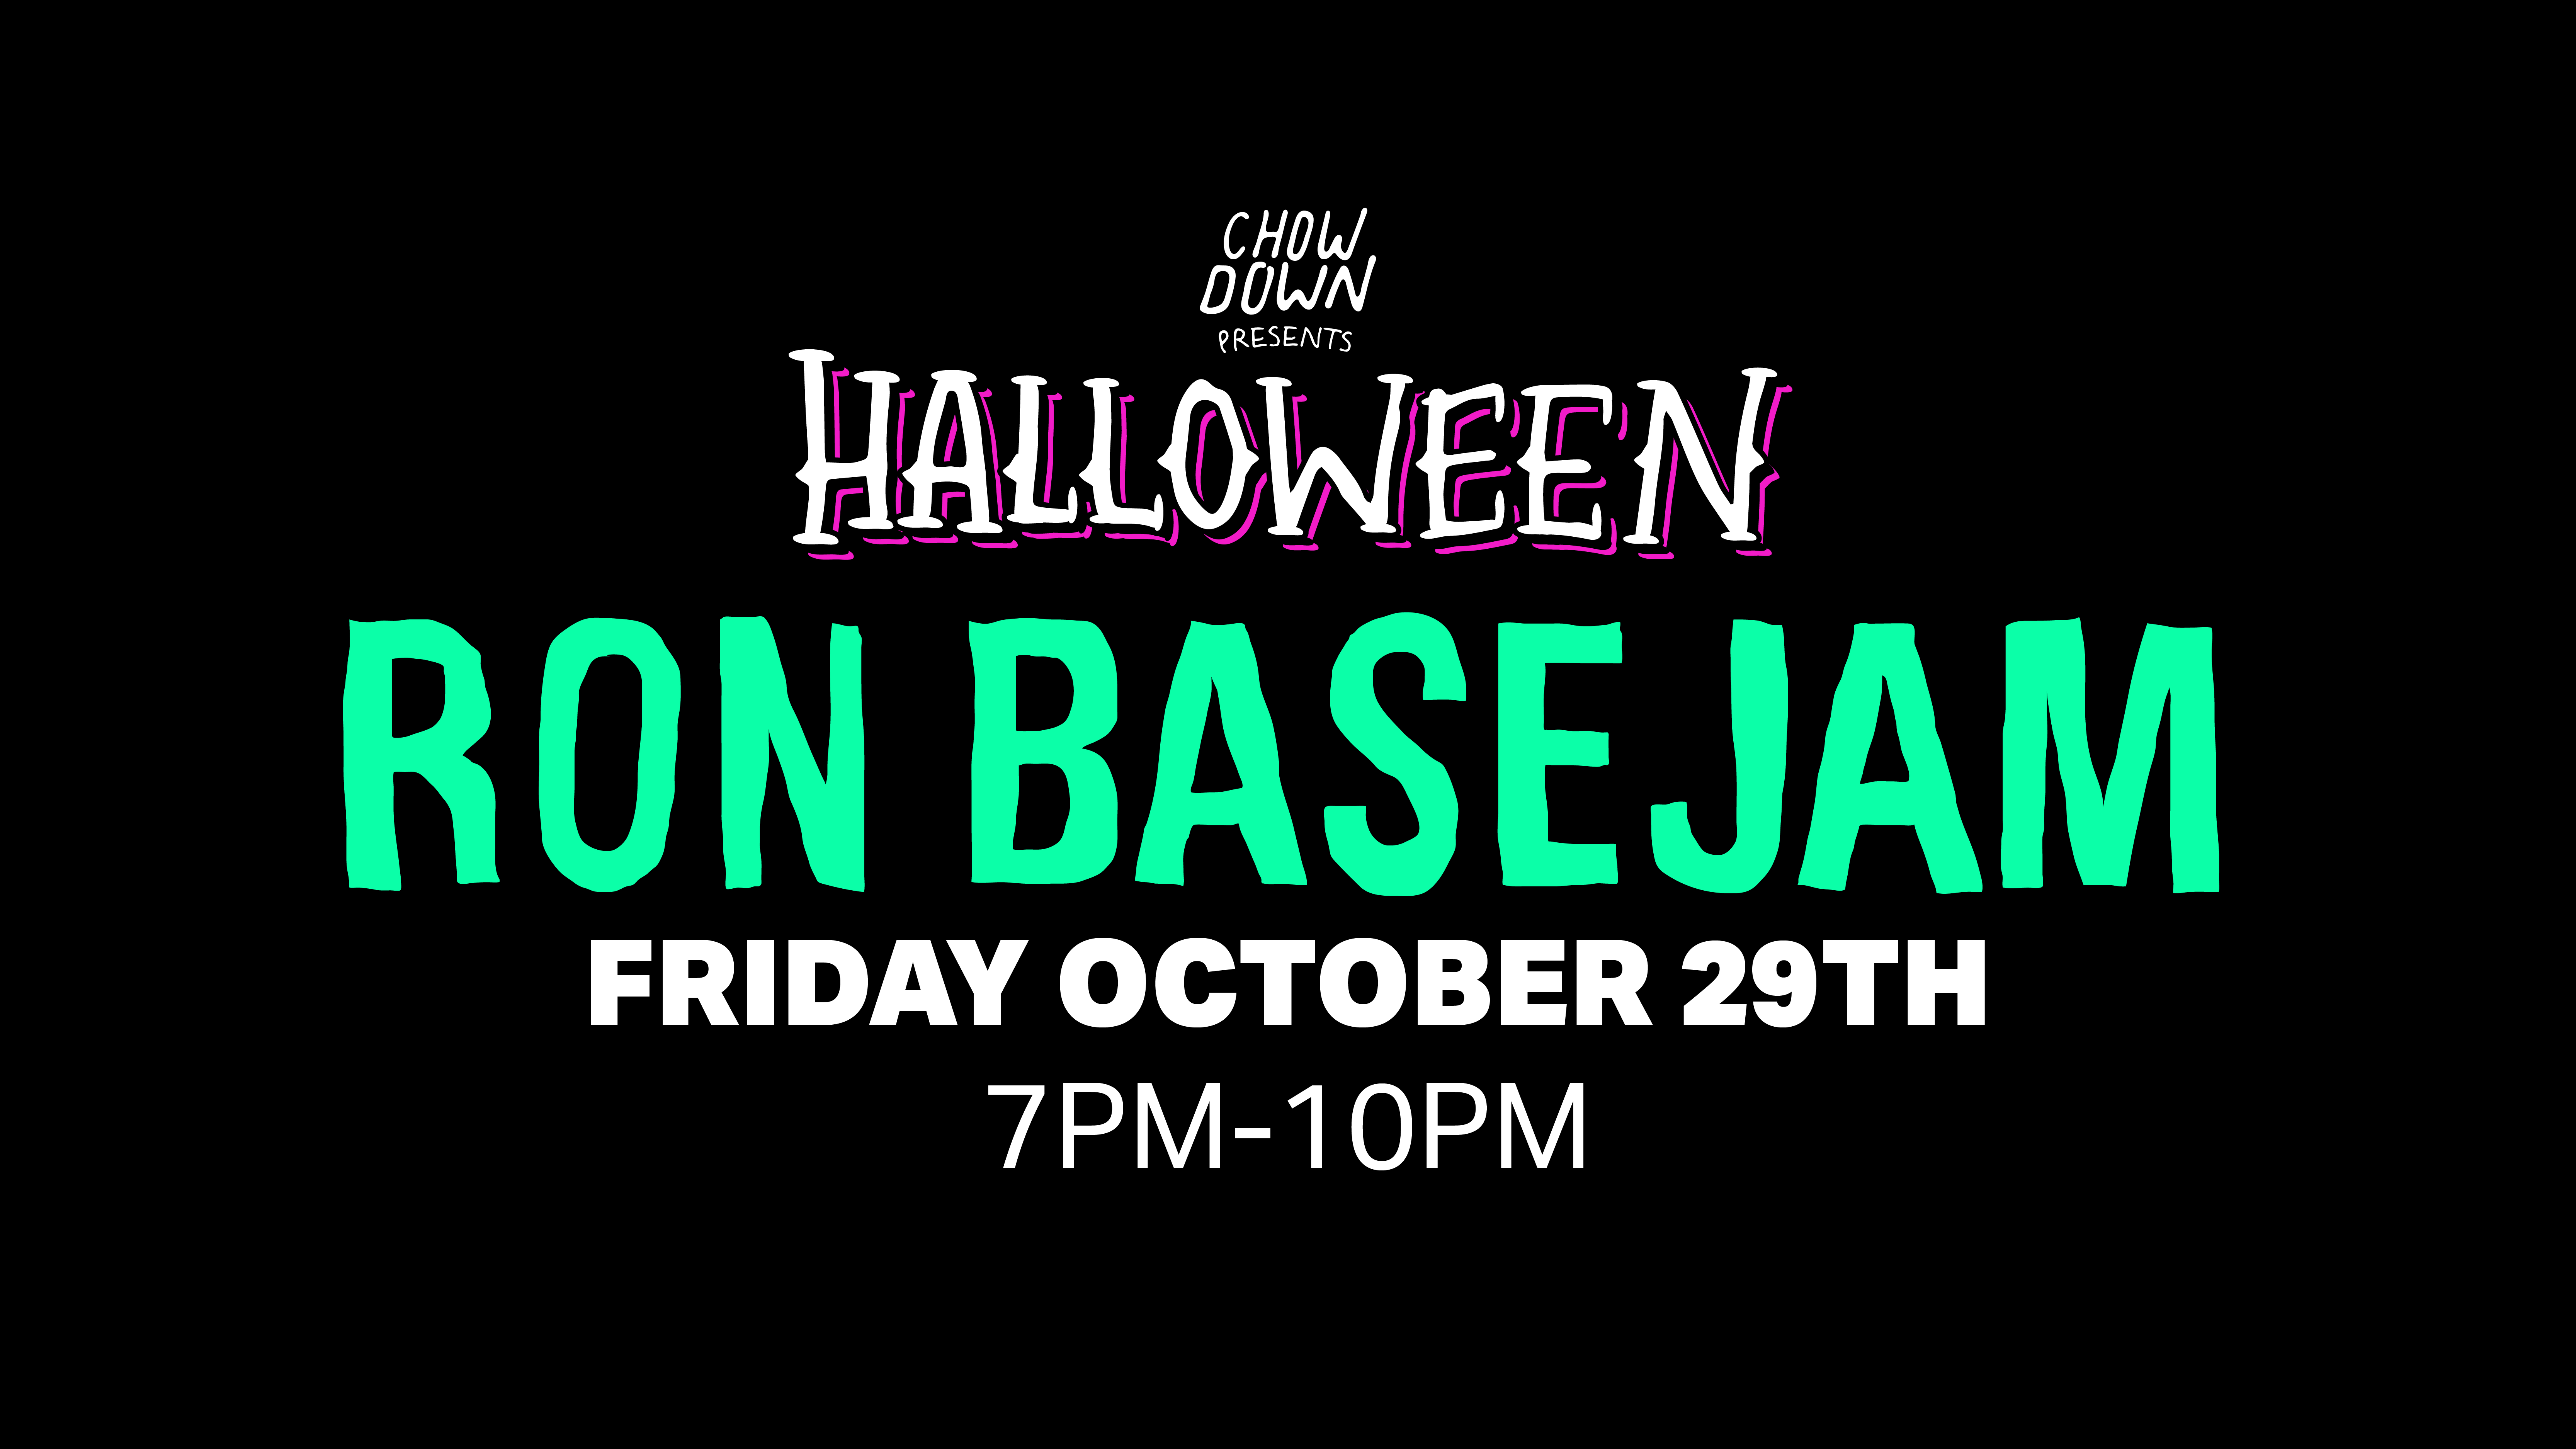 Chow Down Halloween: Friday 29th October – 2 HOUR SESSION – Ron Basejam (DJ Set)